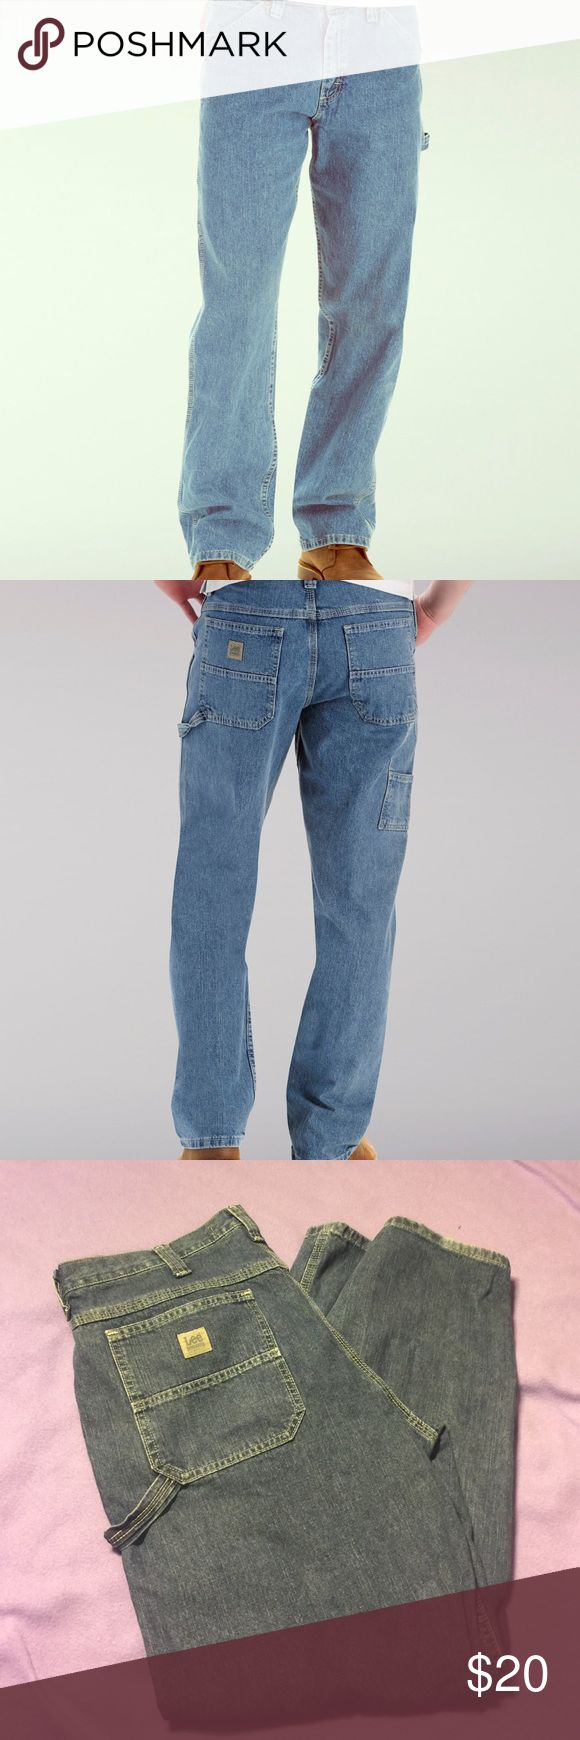 EUC Lee Dungarees Carpenter Men's jeans 38x32 Excellent used condition, minor wear to bottoms and one small spot as pictured on front of jeans, lee dungarees carpenter means jeans in size 38x32. Extremely well made work pants that were only worn twice. Lighter wash. Lee Jeans Relaxed